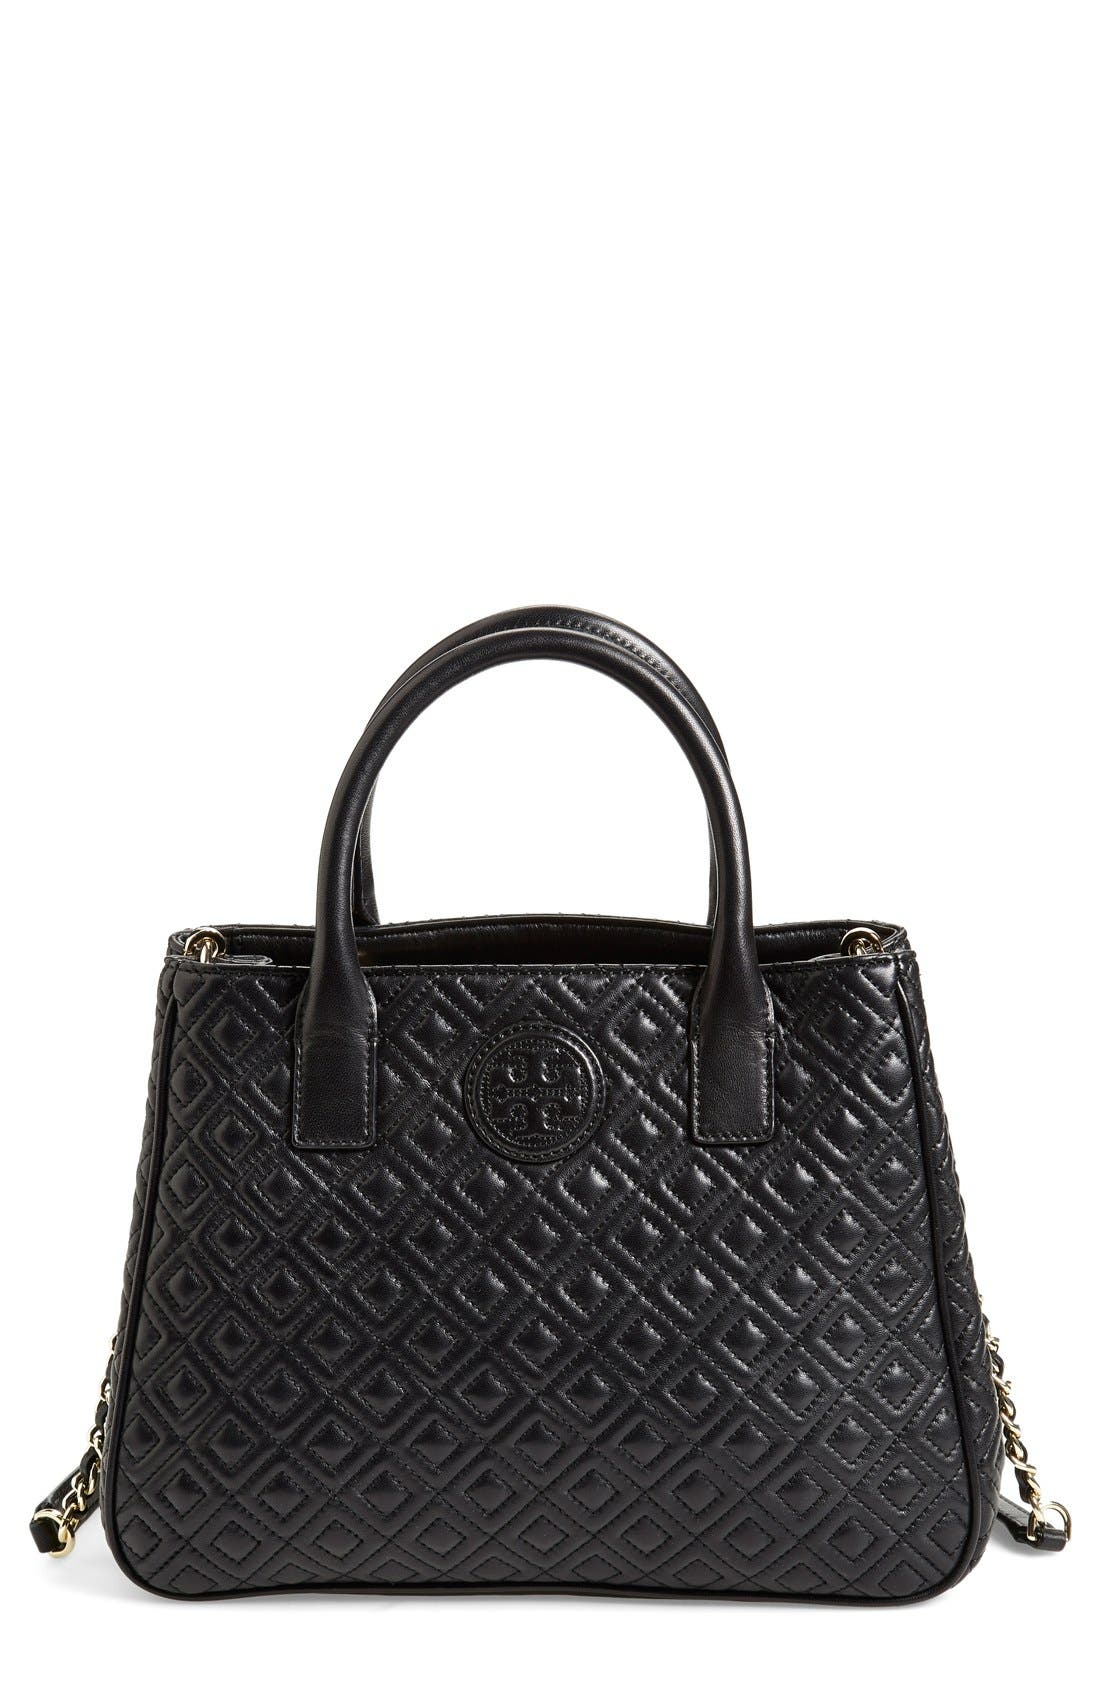 'Marion' Quilted Lambskin Tote,                             Main thumbnail 1, color,                             Black